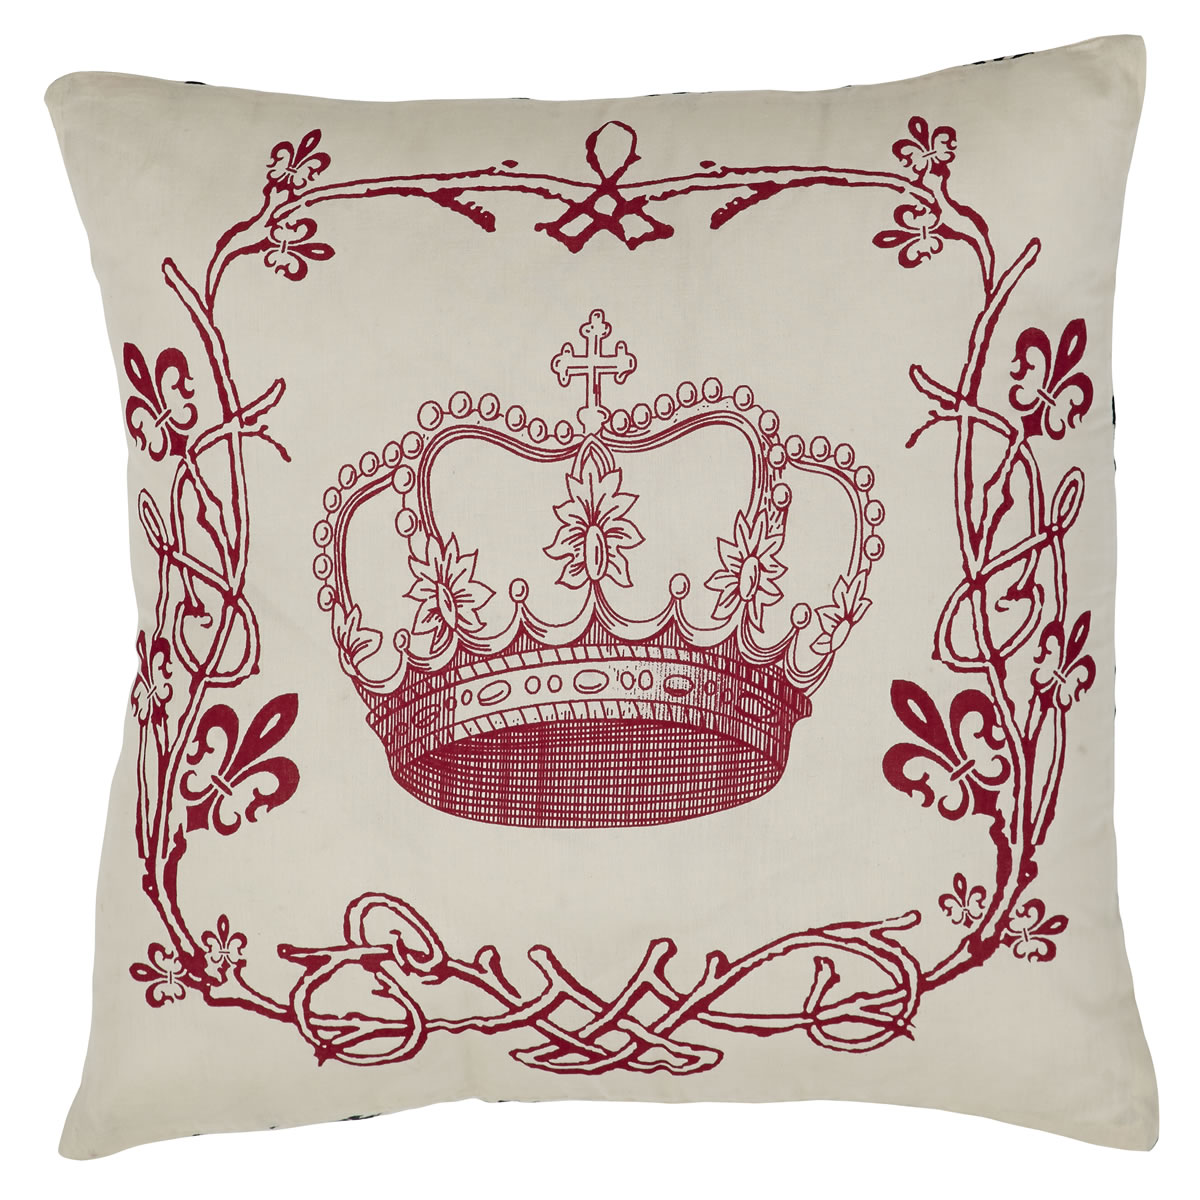 Elysee Stencil Crown Pillow - Fleur de Lis - 16x16 - Black, Red and Creme - VHC